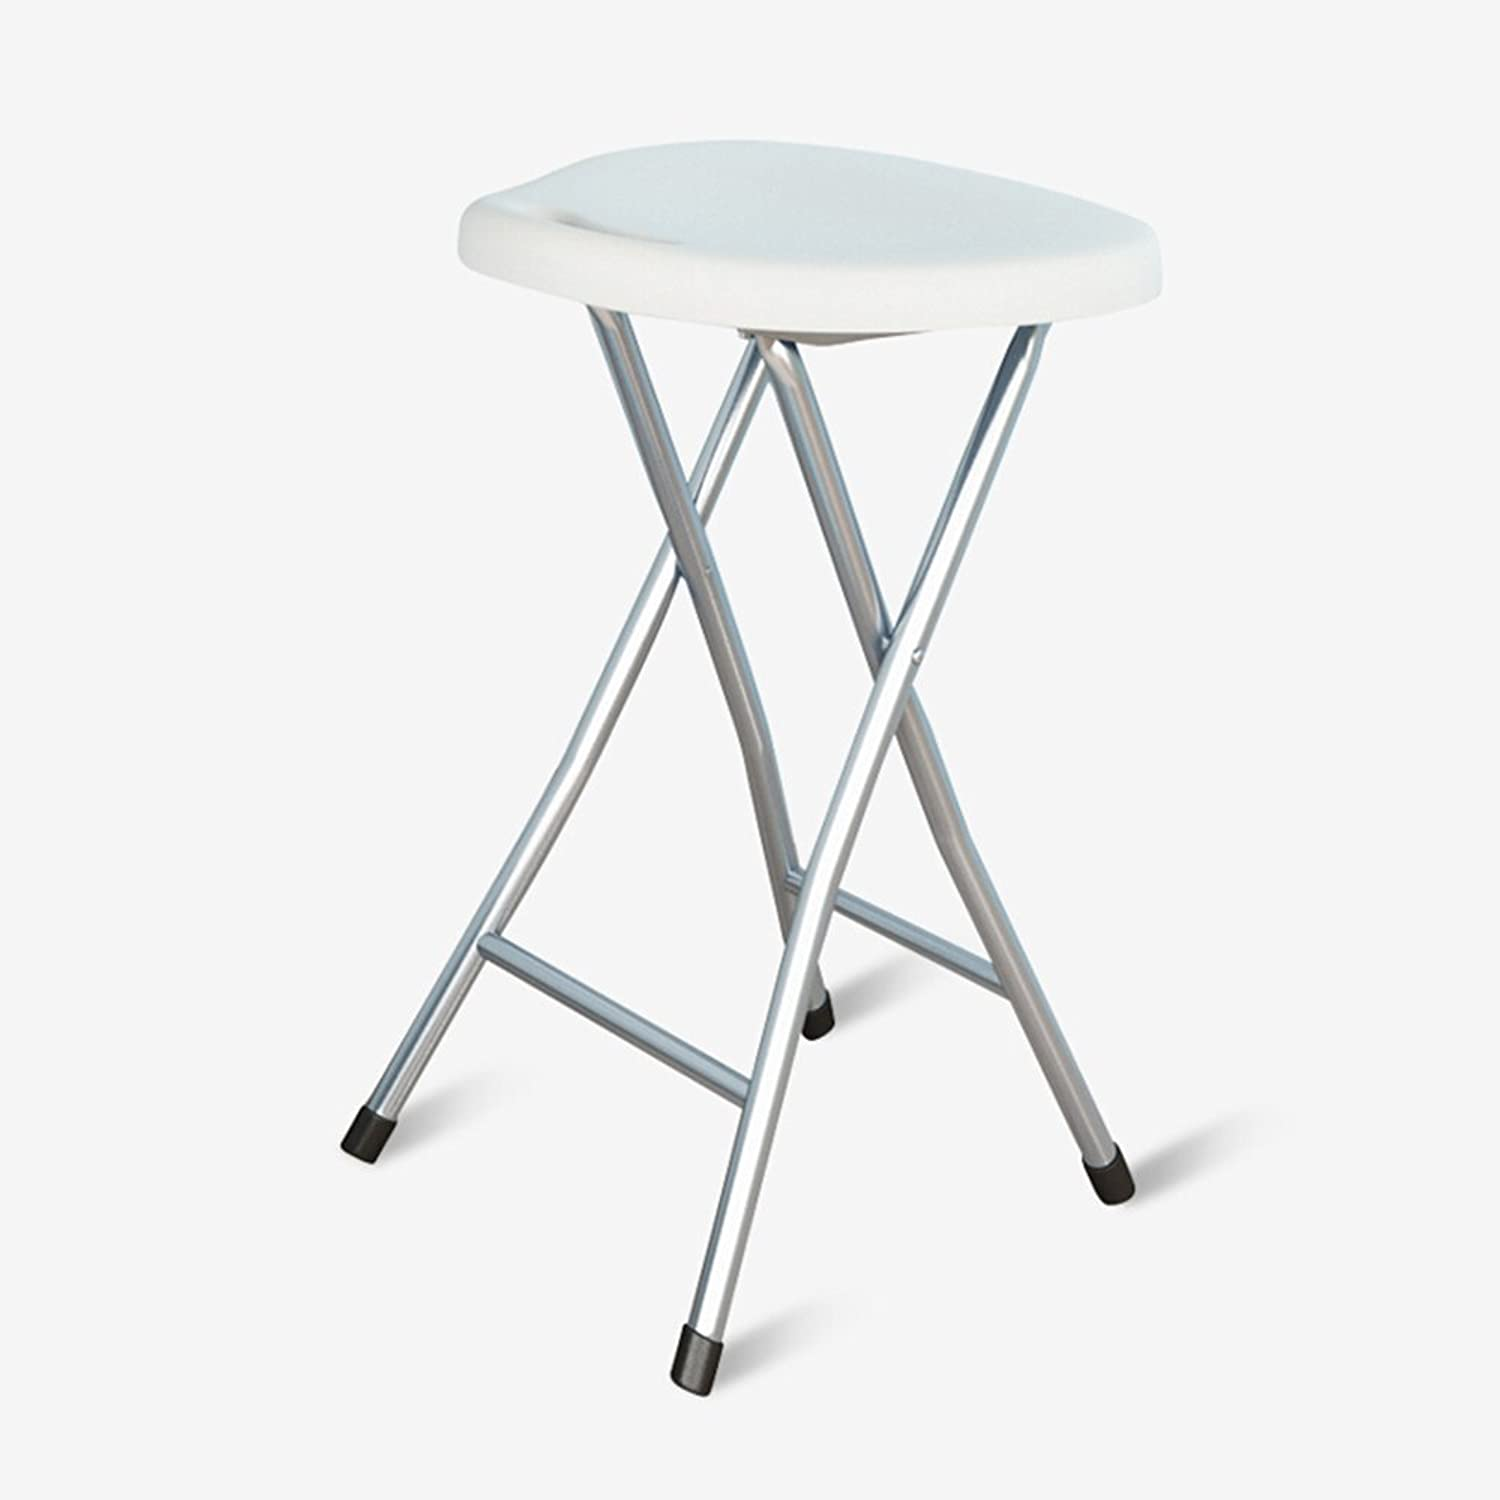 Folding stool chair   plastic office computer stool   home leisure portable stool   fishing stool ( color   White )